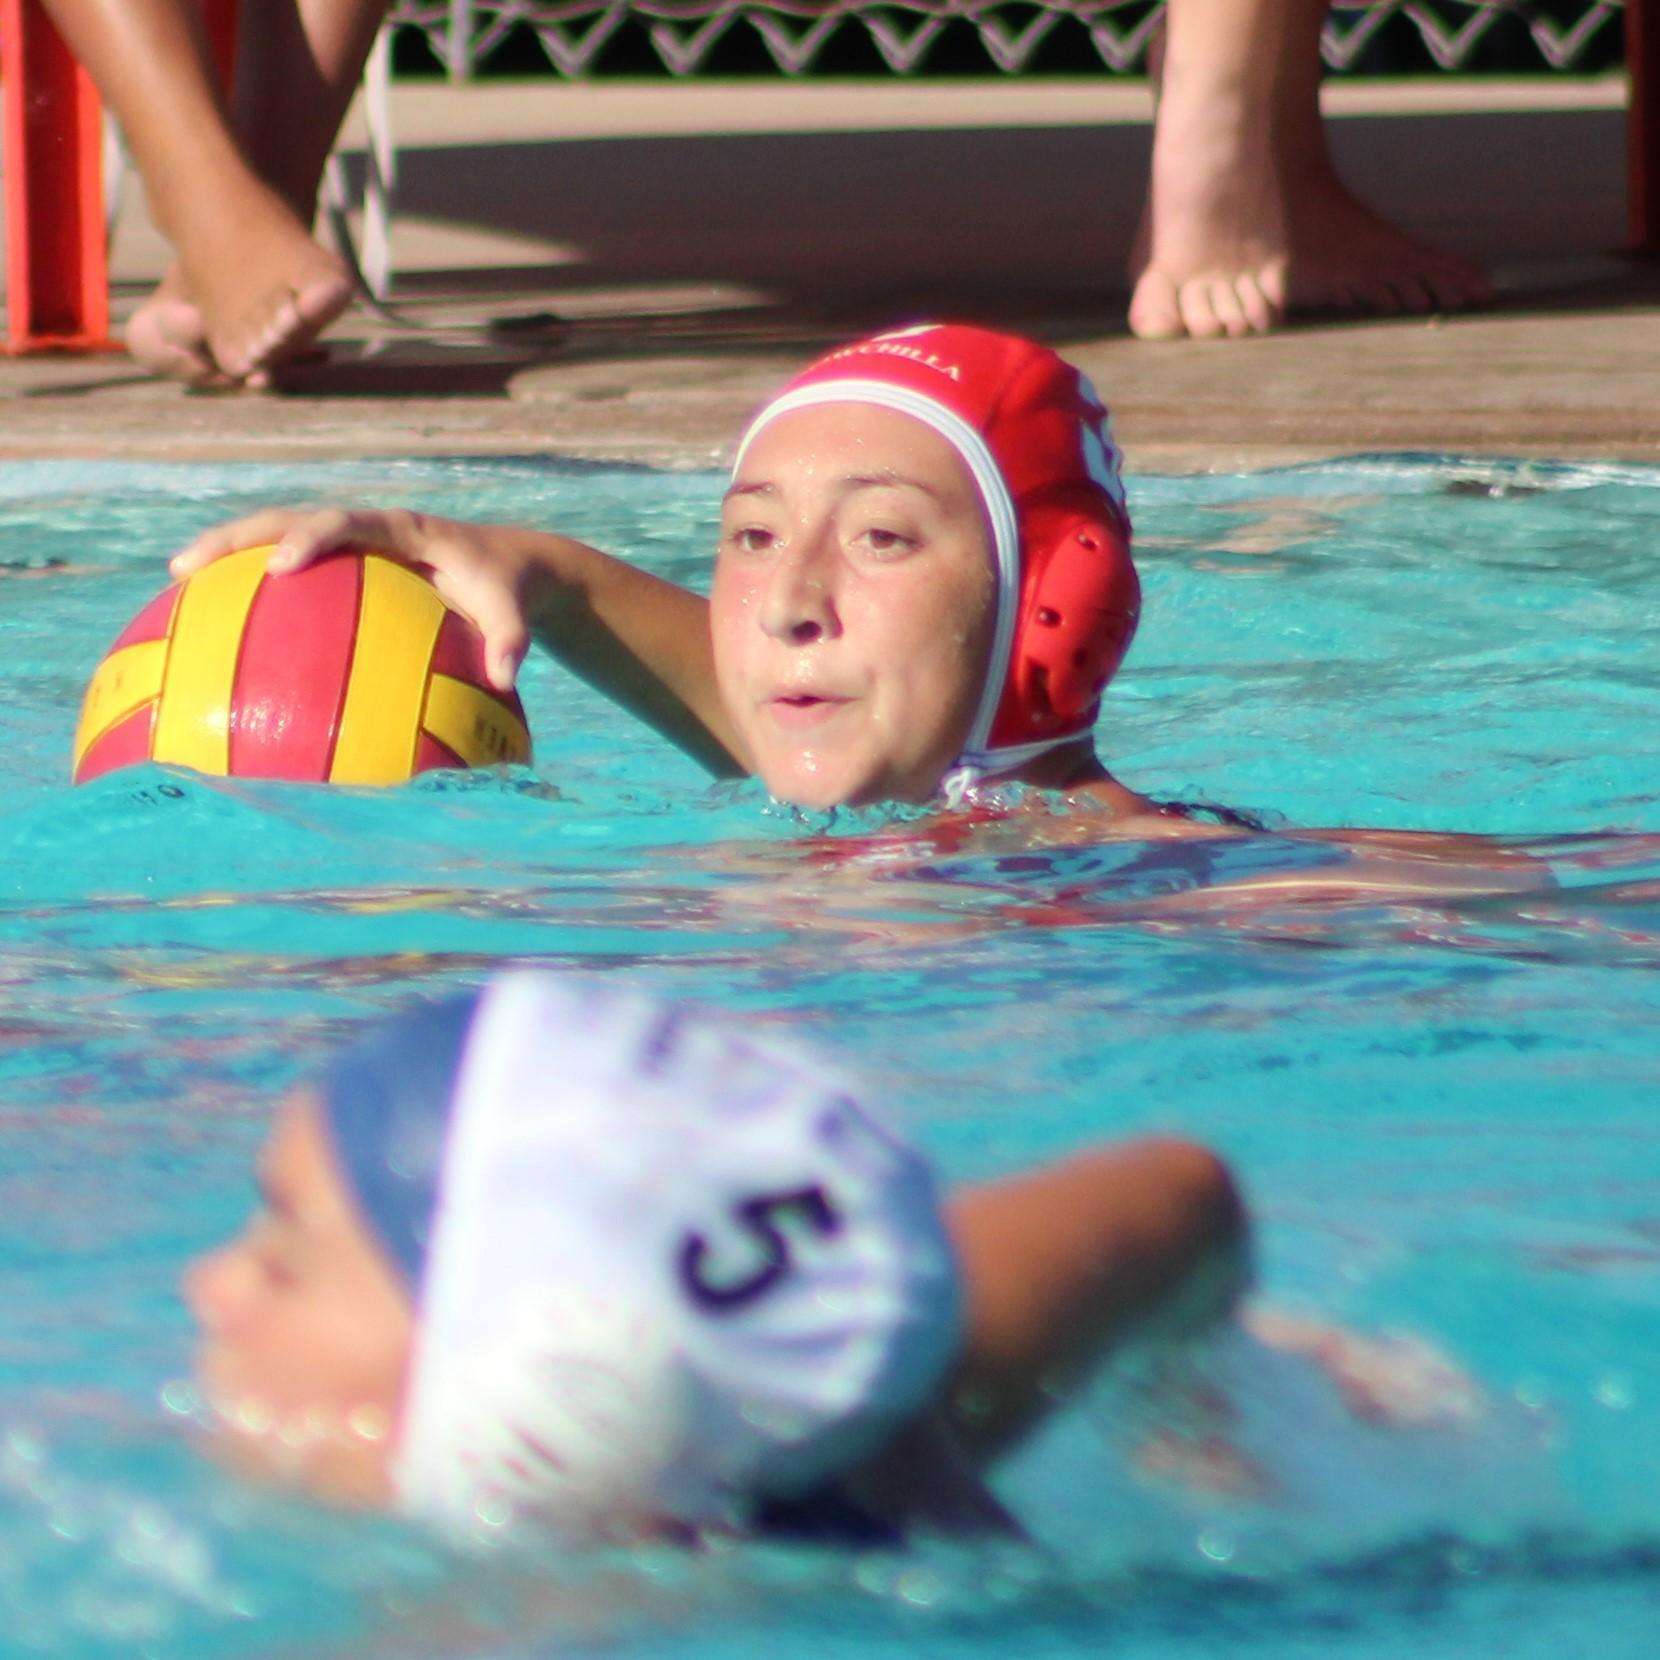 Girls playing water polo